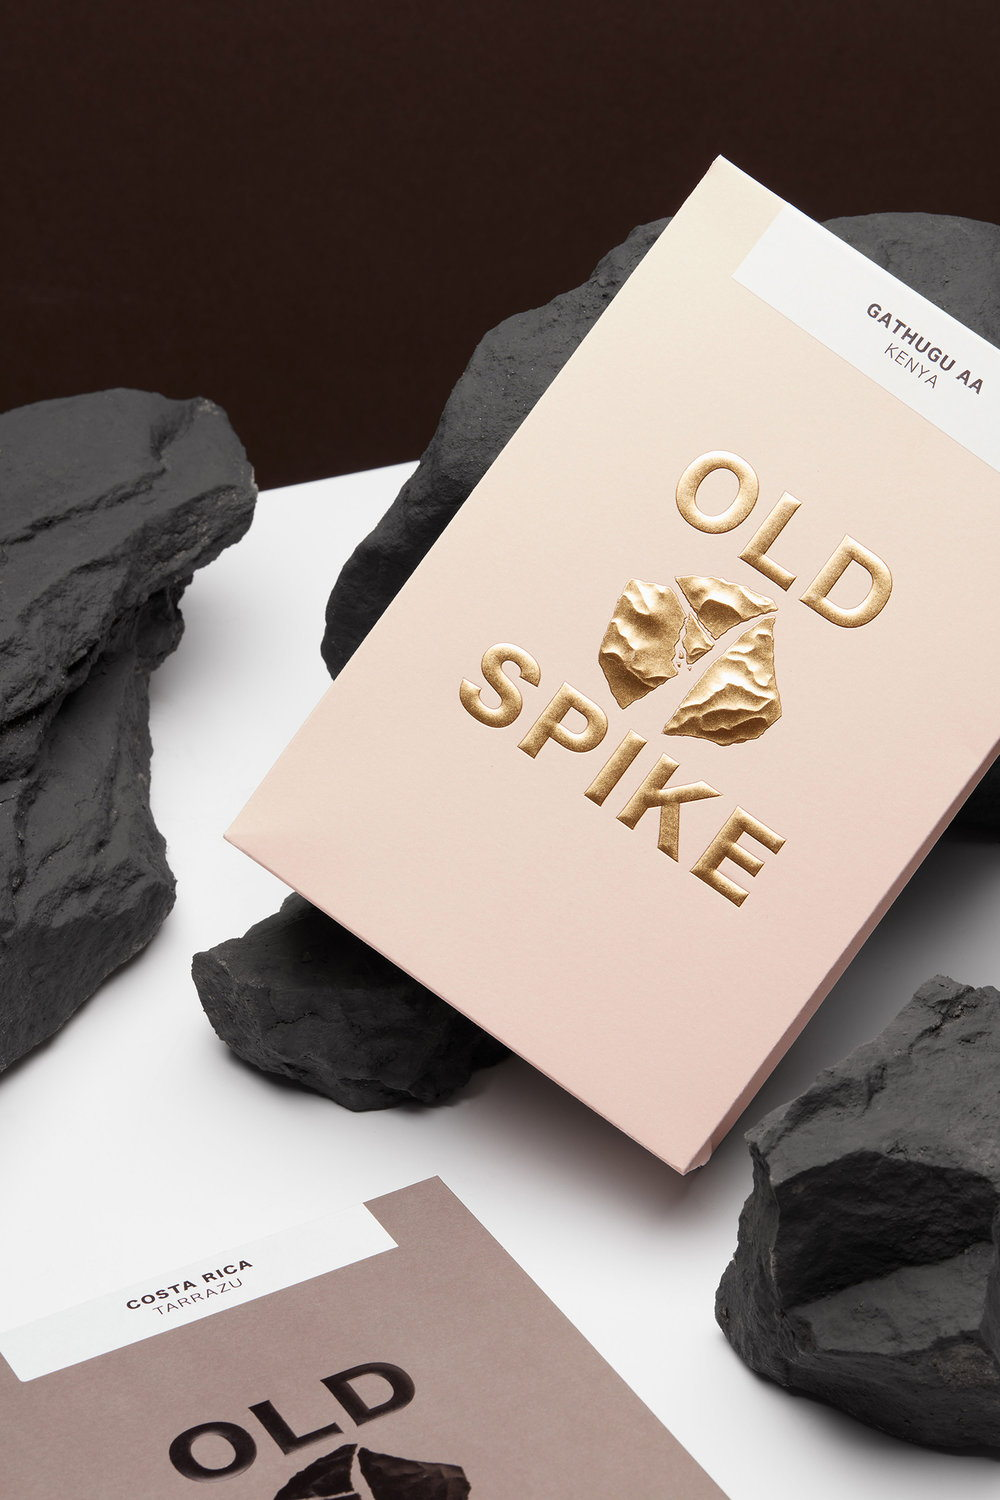 5-Old-Spike-Cafe-Coffee-Rostery-Branding-Packaging-Sculpted-Emboss-Commission-Studio-London-UK-BPO.jpg